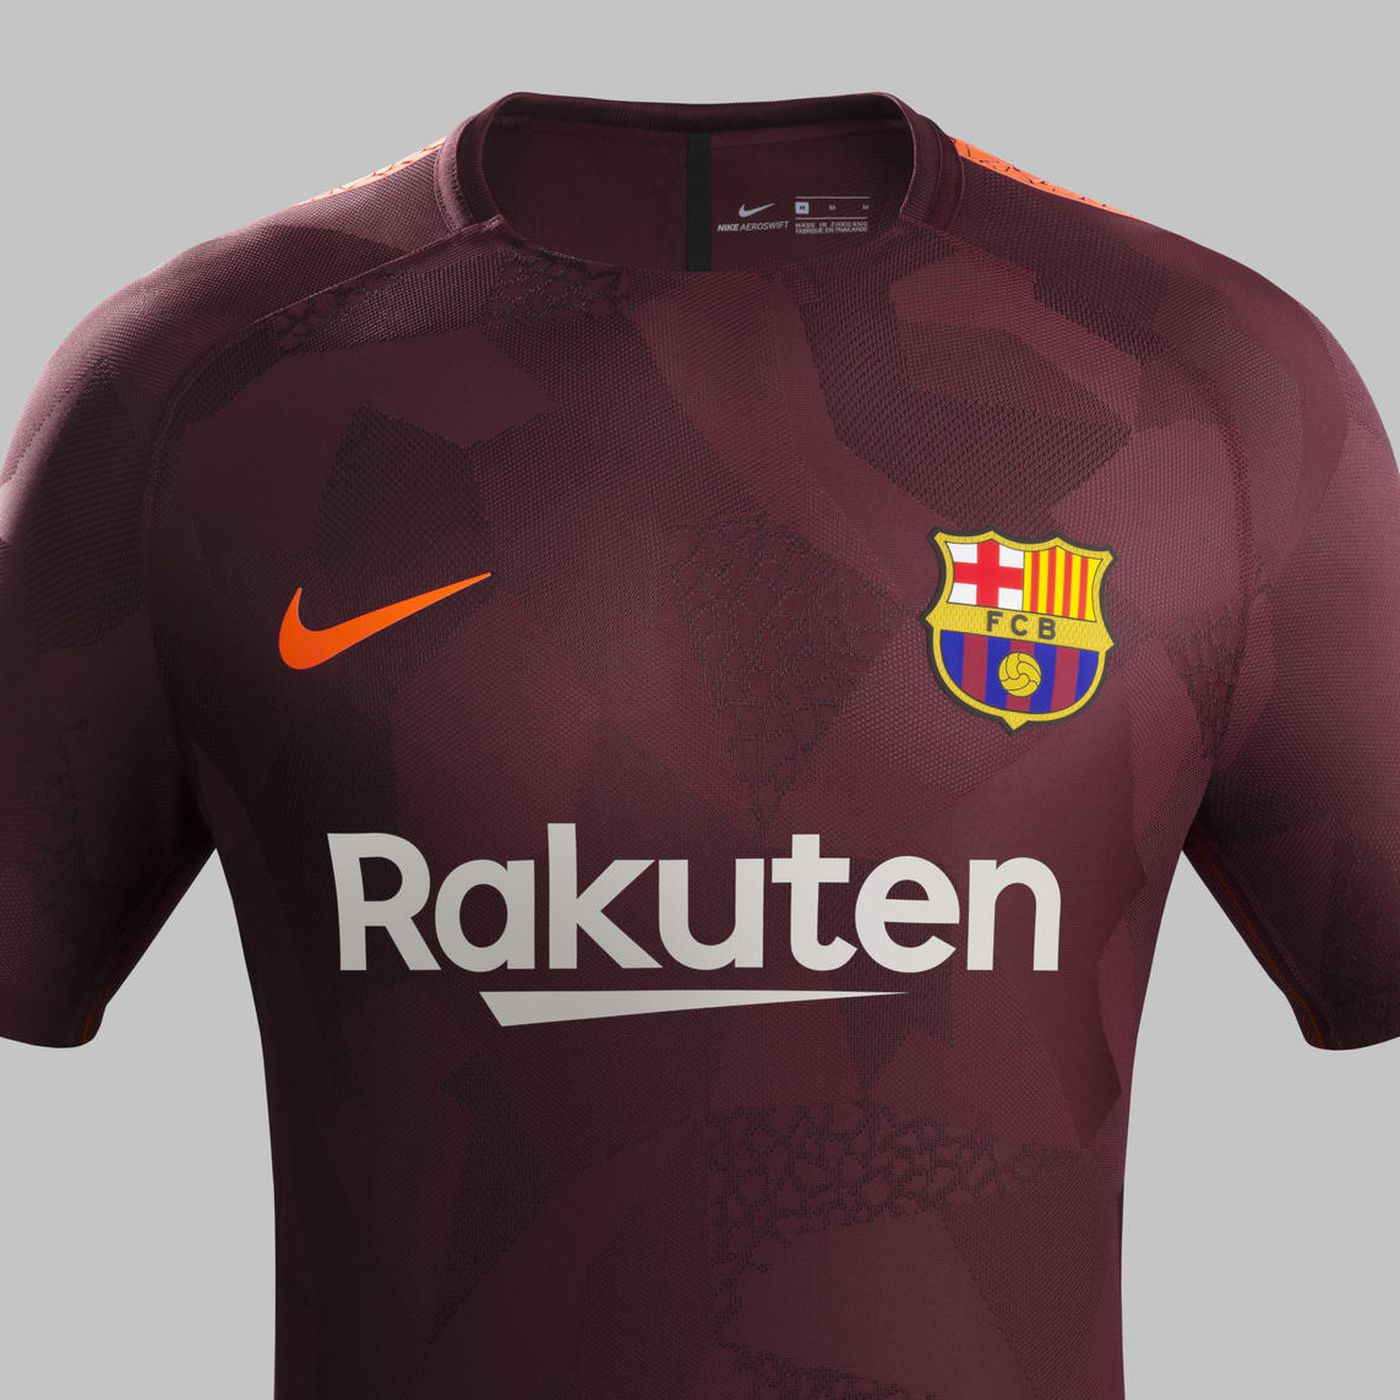 Soccer Uniforms:$17 each Jersey and shorts